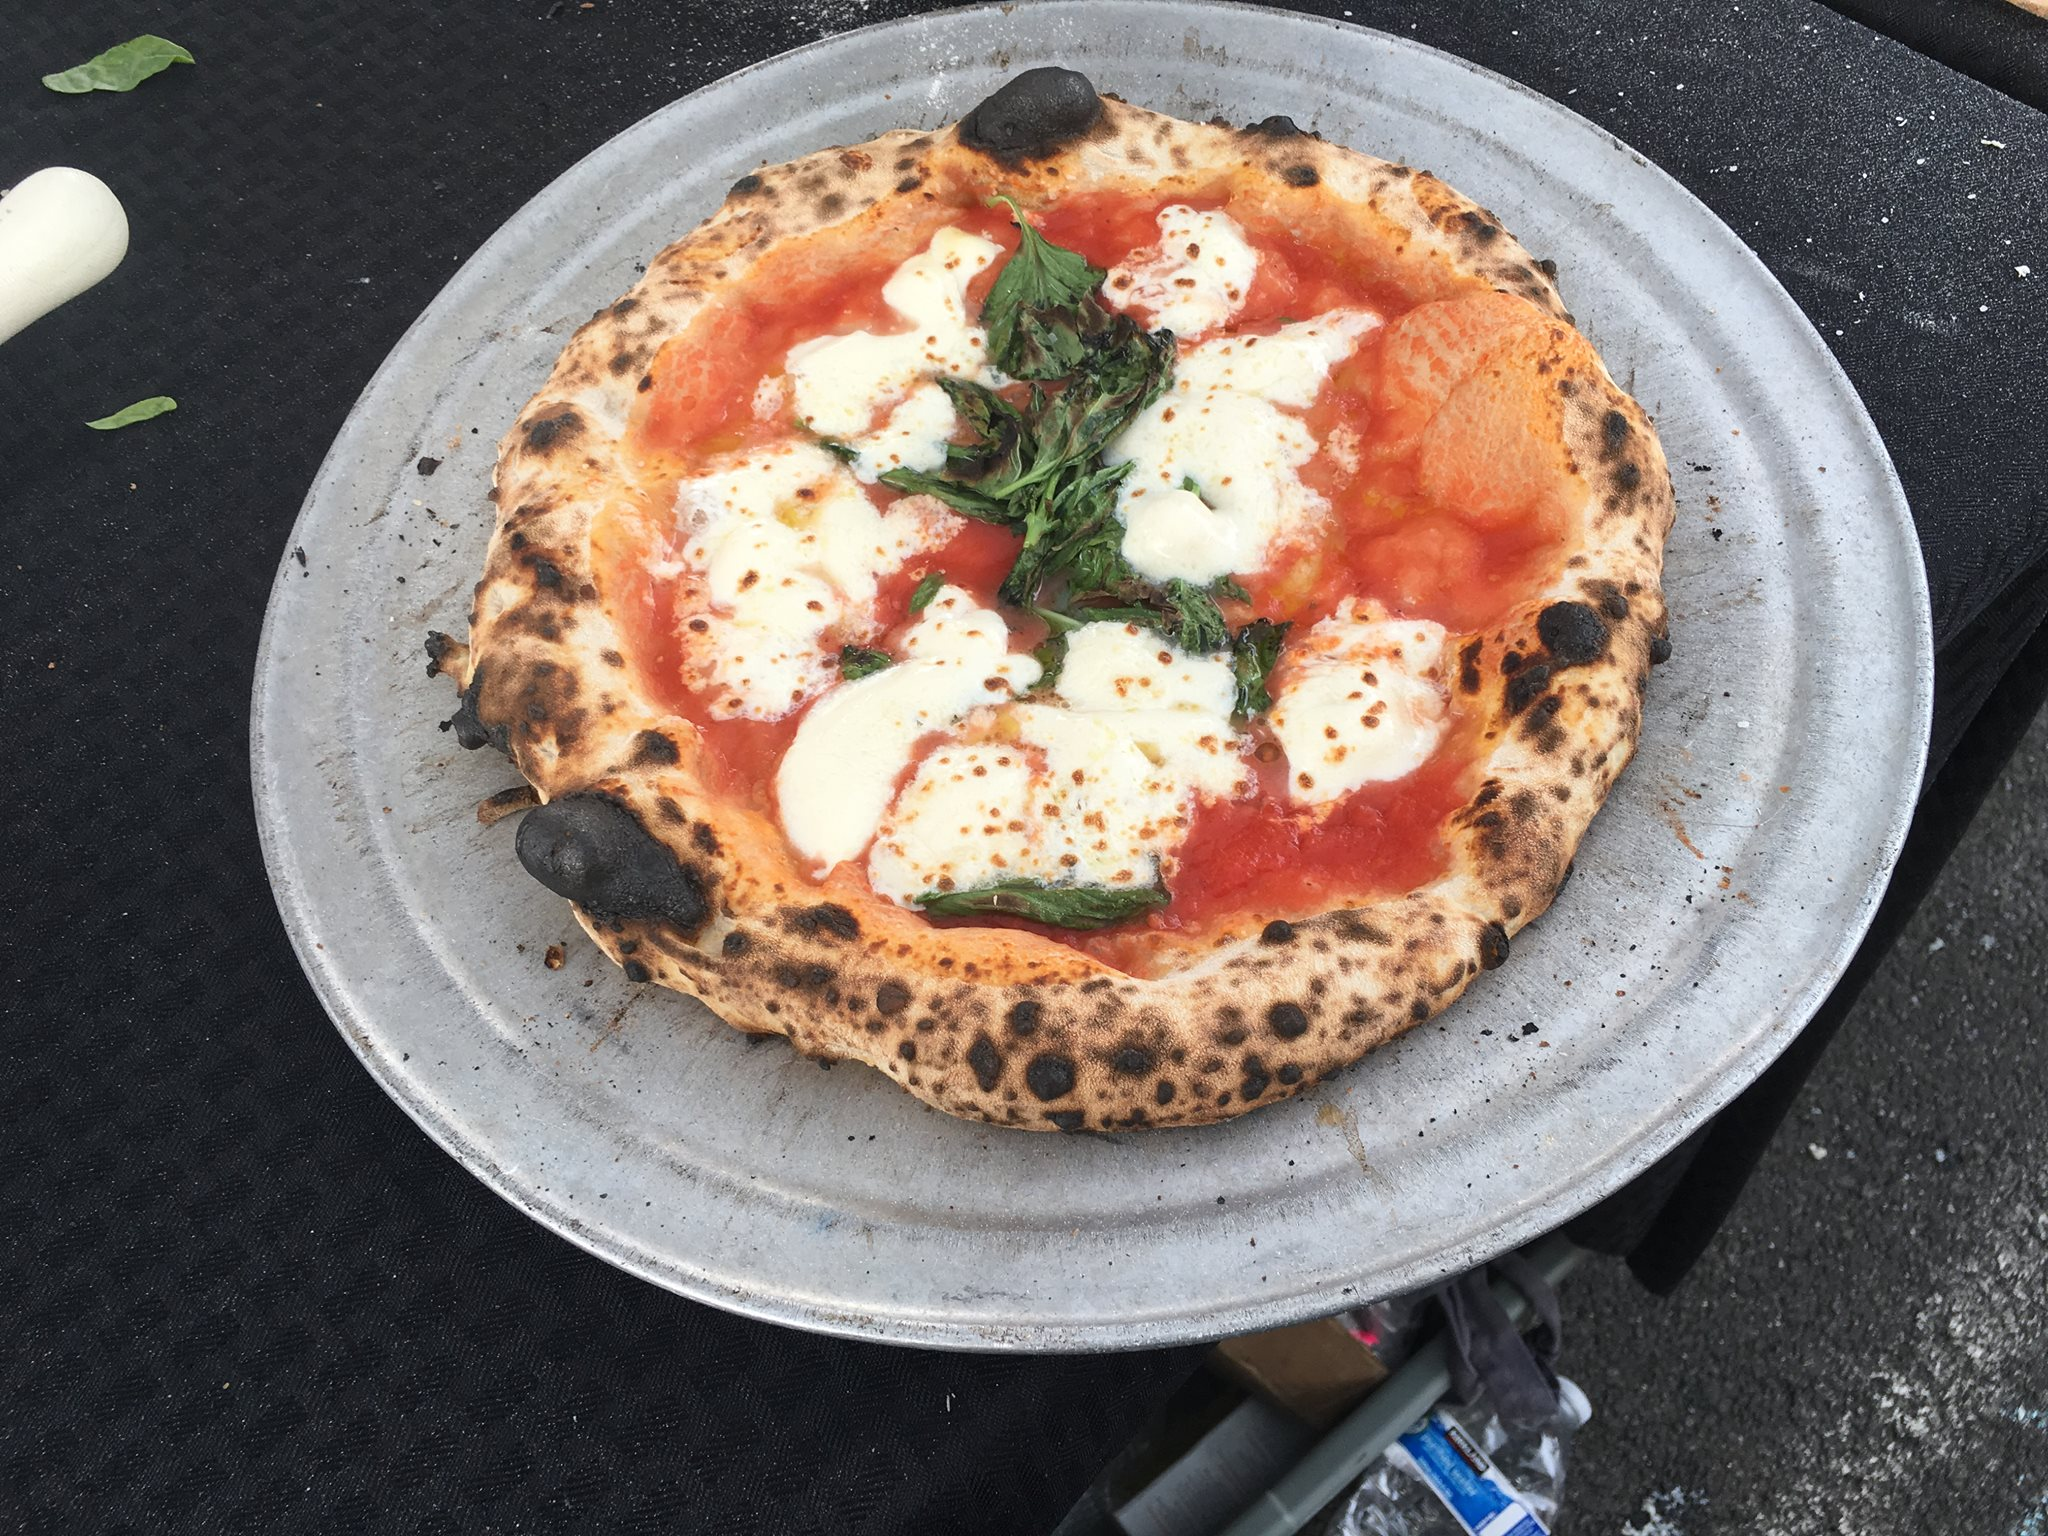 A pie from Fire Dance Pizza